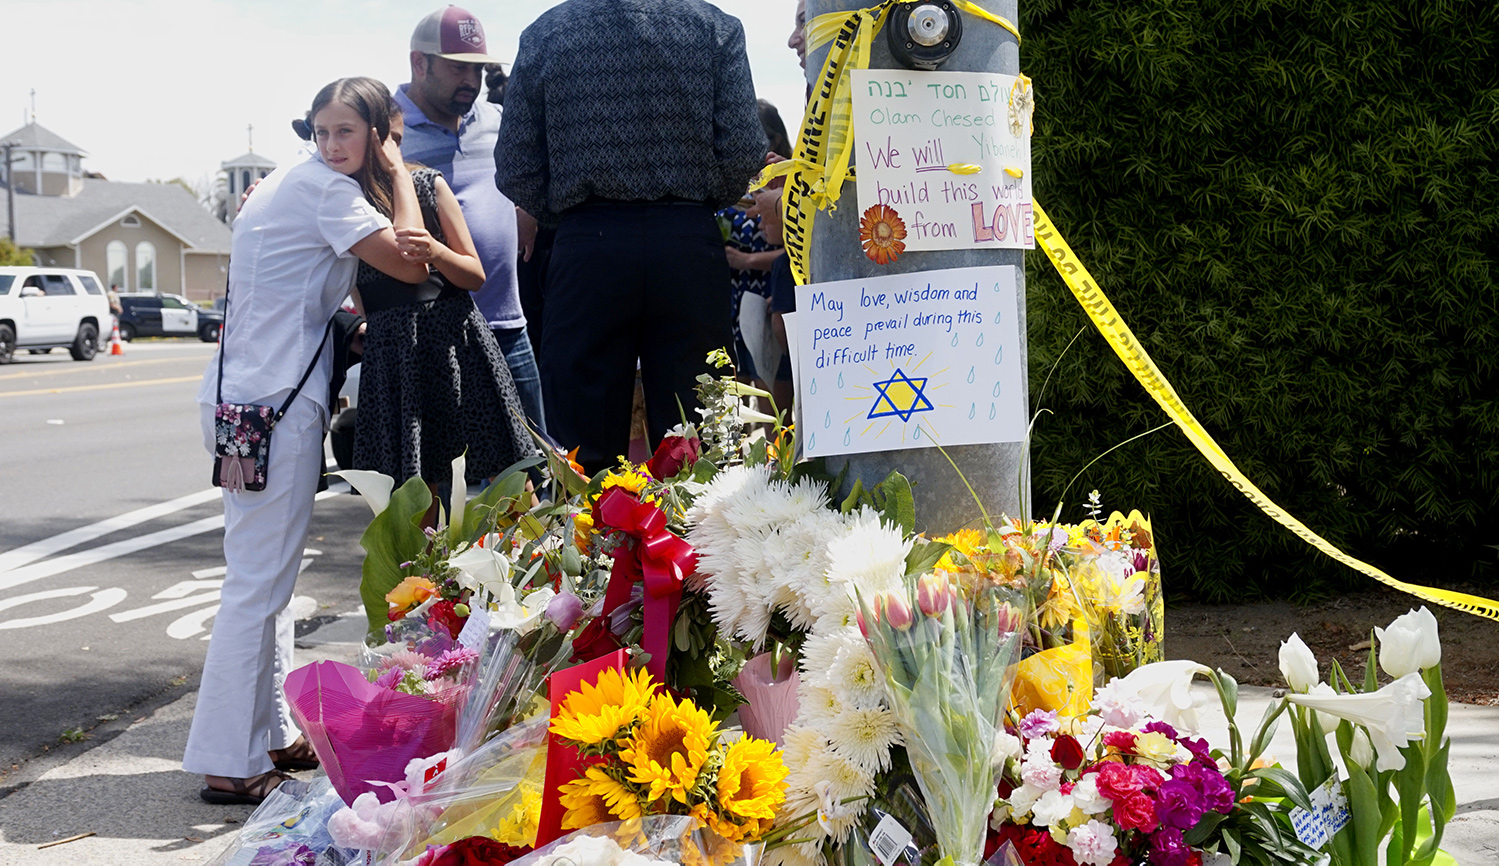 Mourners and well wishers leave flowers and signs at a memorial across the street from the Chabad of Poway Synagogue on Sunday, April 28, 2019 in Poway, California, one day after a teenage gunman opened fire, killing one person and injuring three others. SANDY HUFFAKER/AFP via Getty Images.